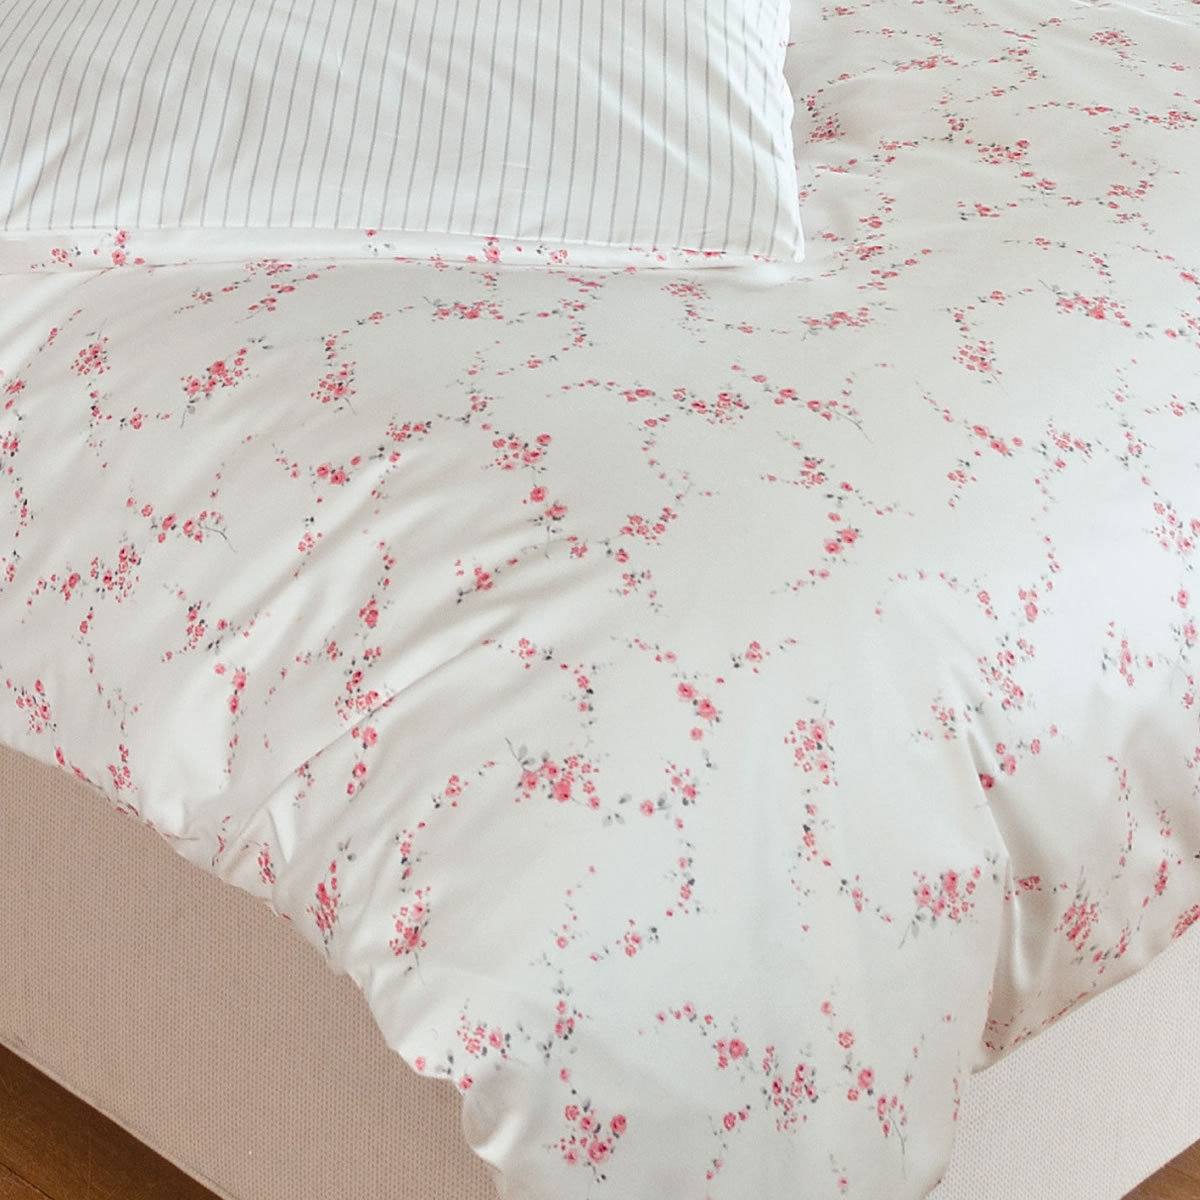 Janine Design Mako-Satin Bettwäsche Romantico 46009-01